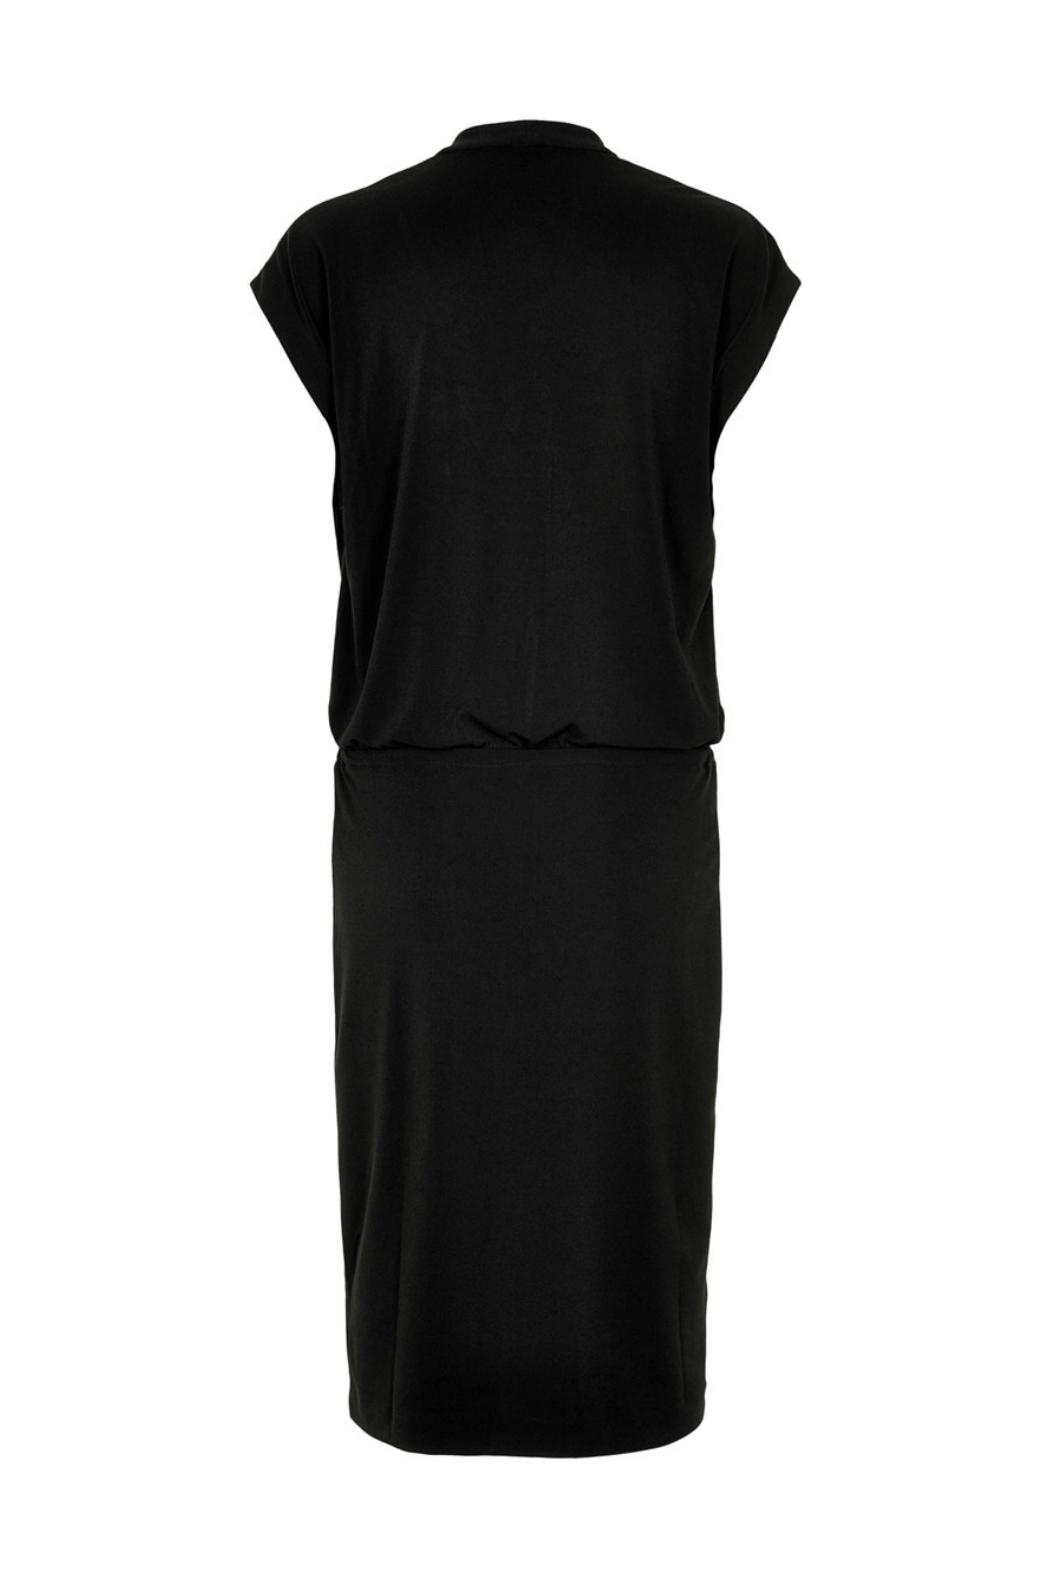 Inwear Feminine Black Dress - Front Full Image